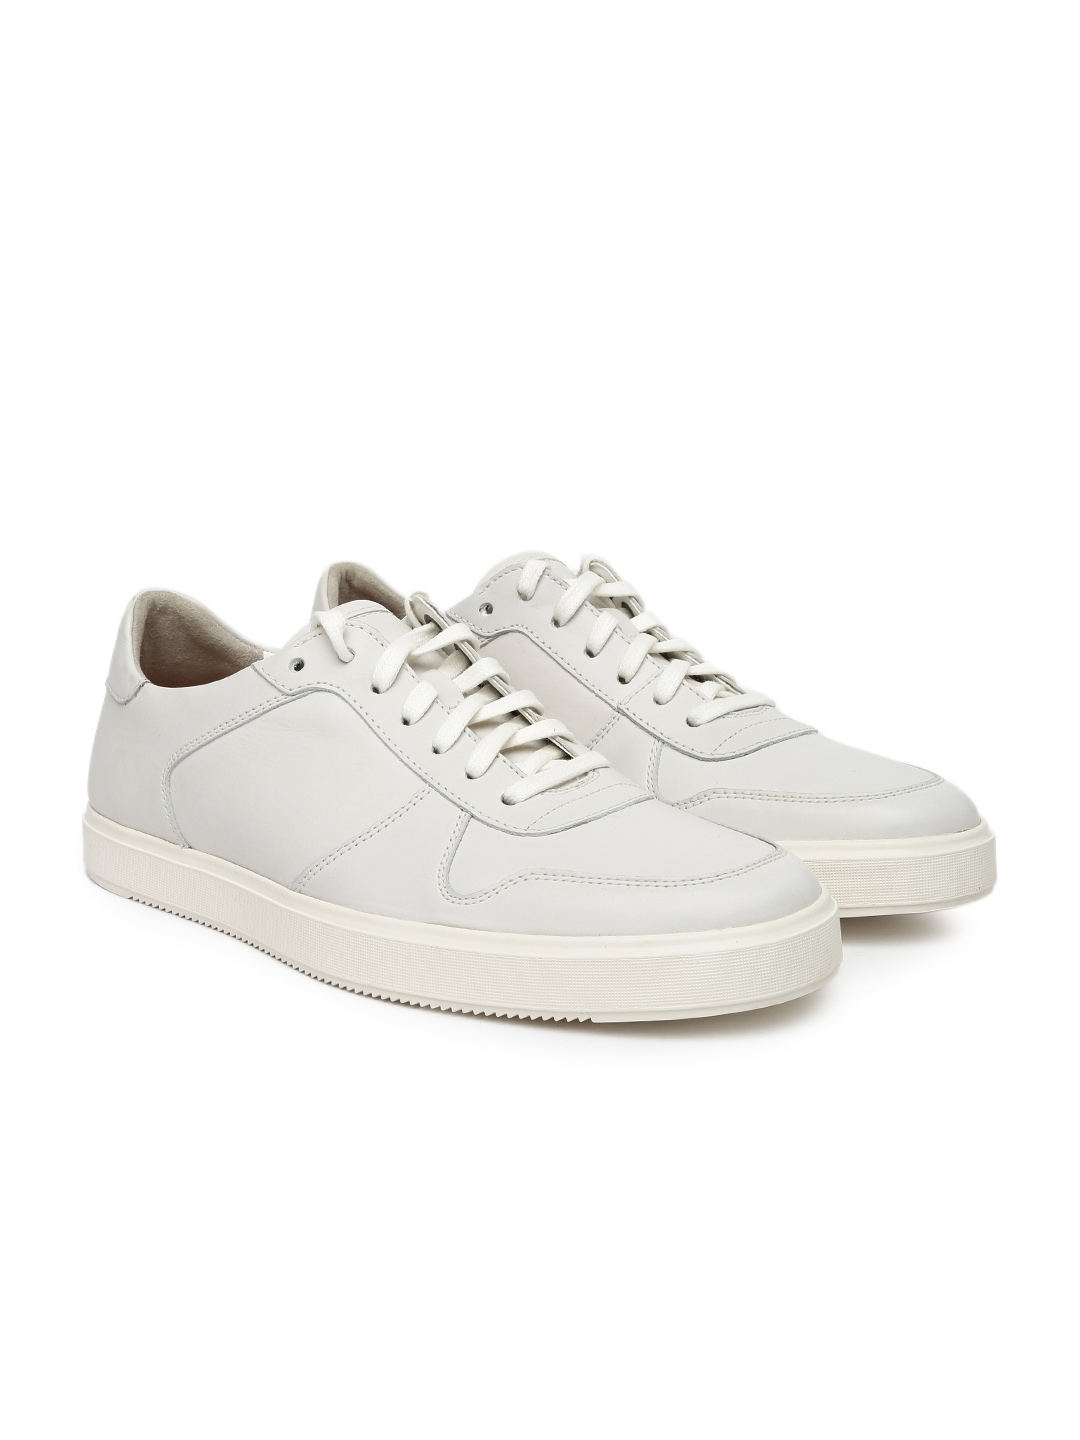 finest selection 0423f 64d2f Sneakers Men Casual Speed Buy Shoes Clarks White Leather ...